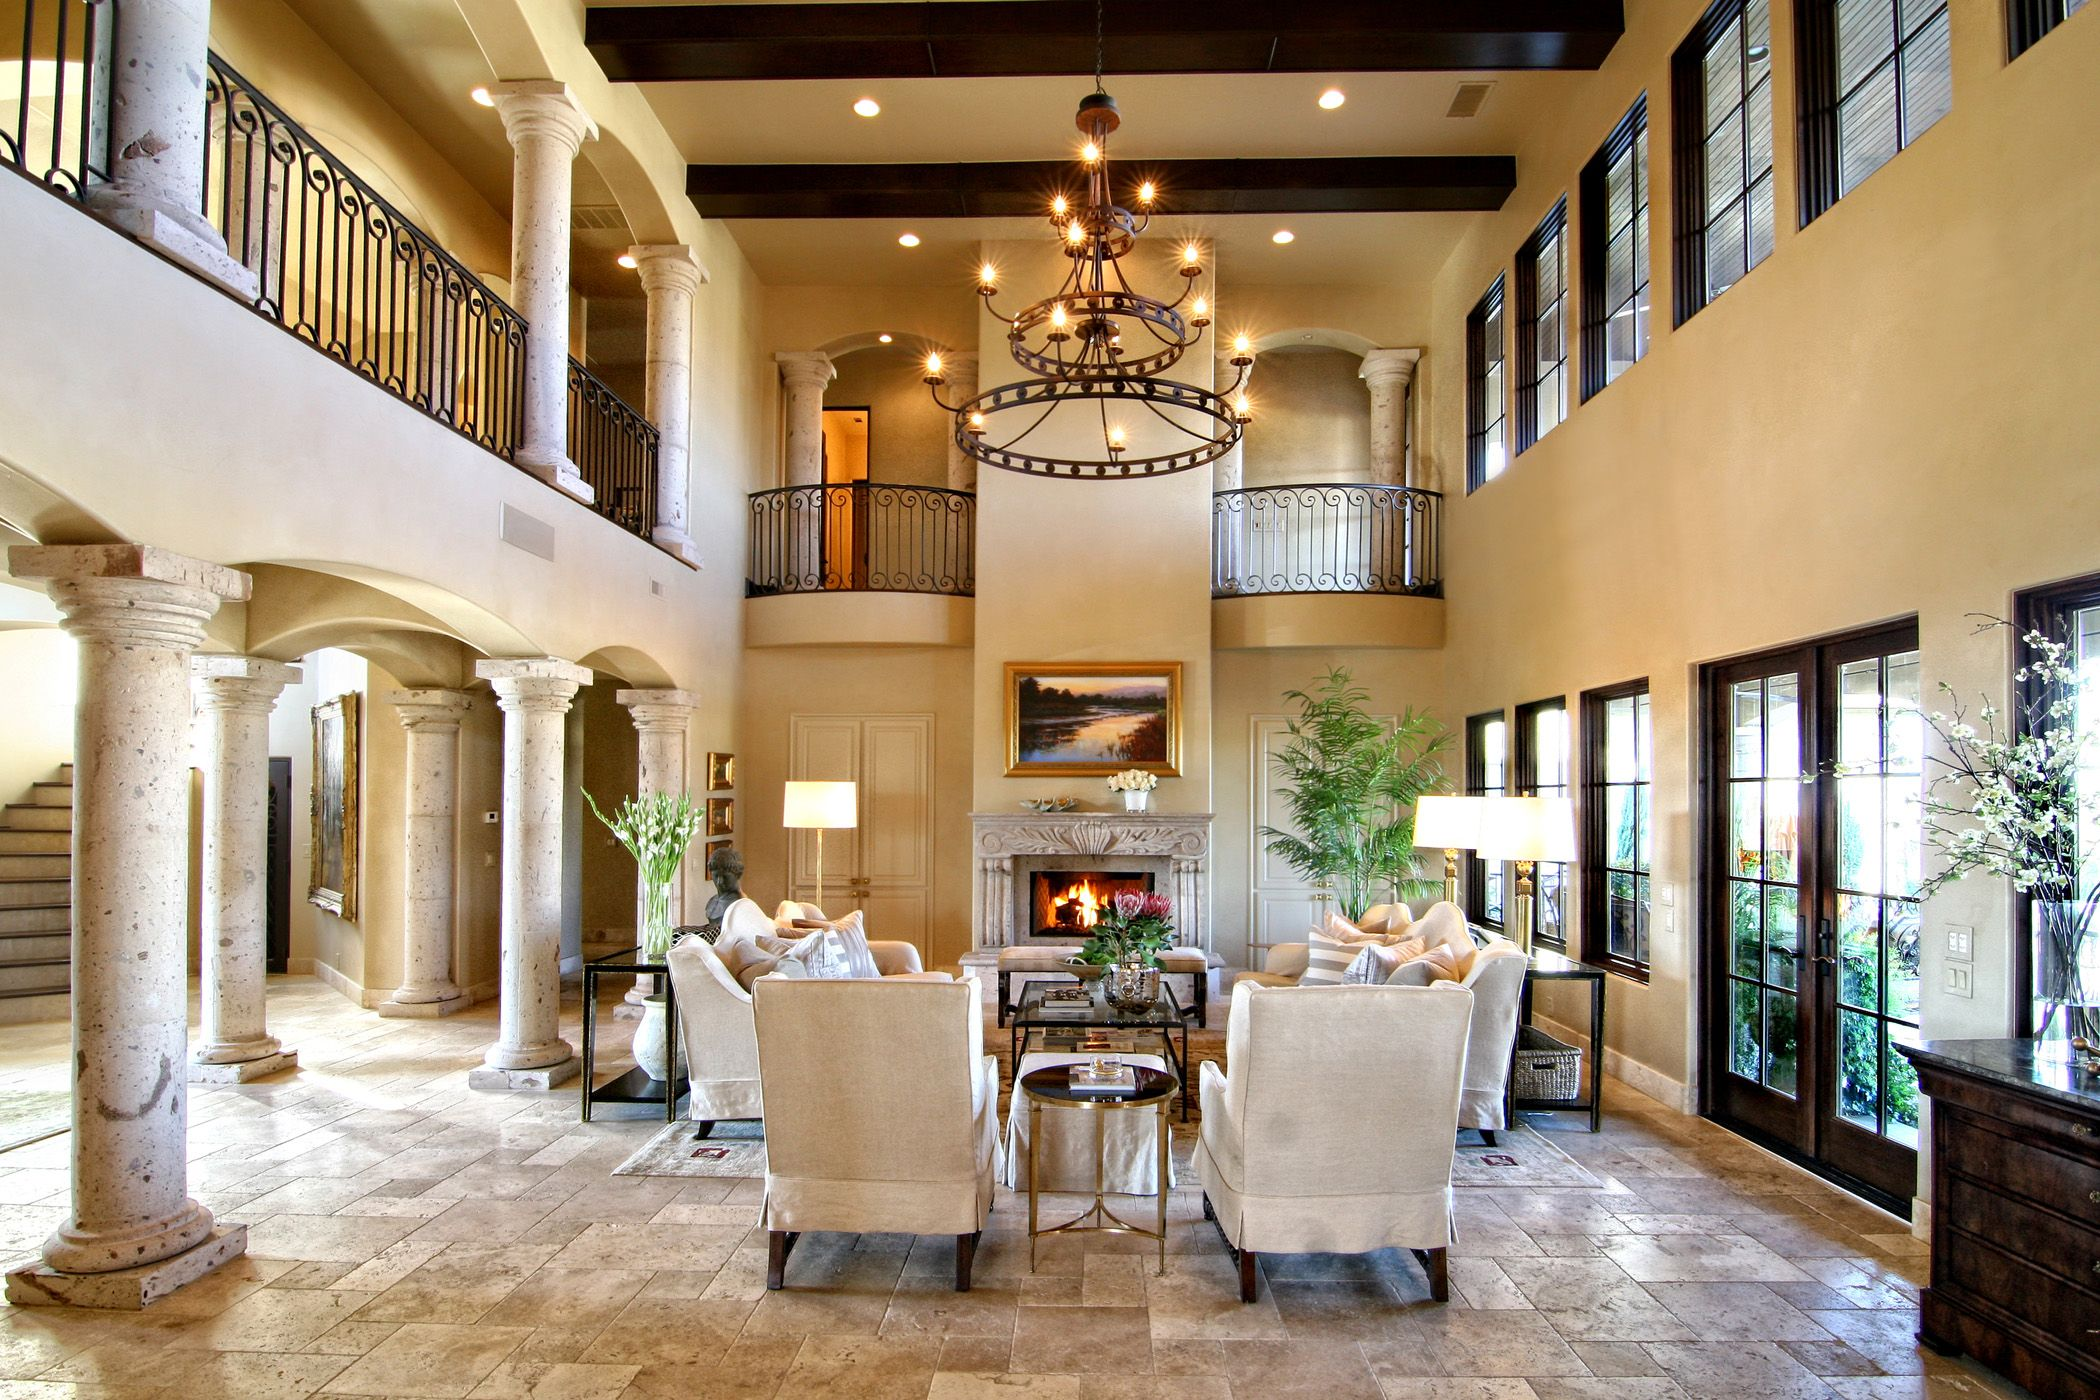 Horseshoe bay tuscan lake house living room by zbranek holt custom homes horseshoe bay